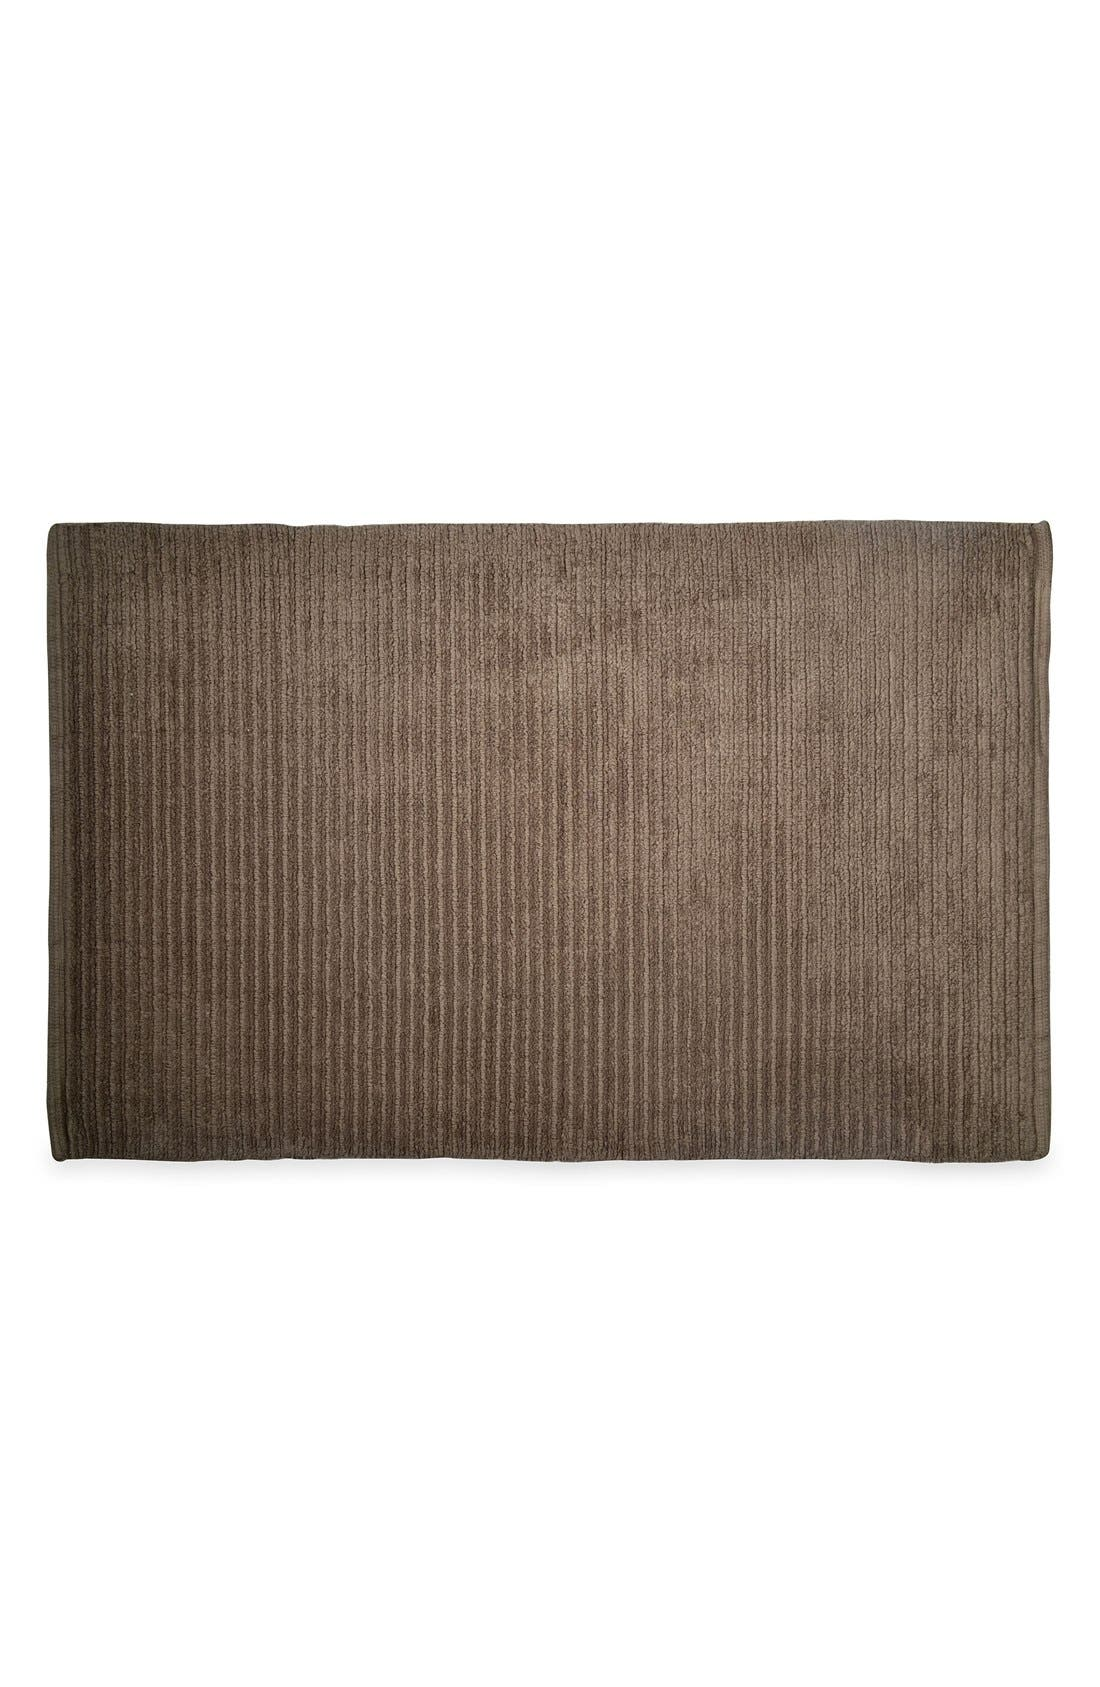 DKNY Mercer Bath Rug, Main, color, GREYSTONE